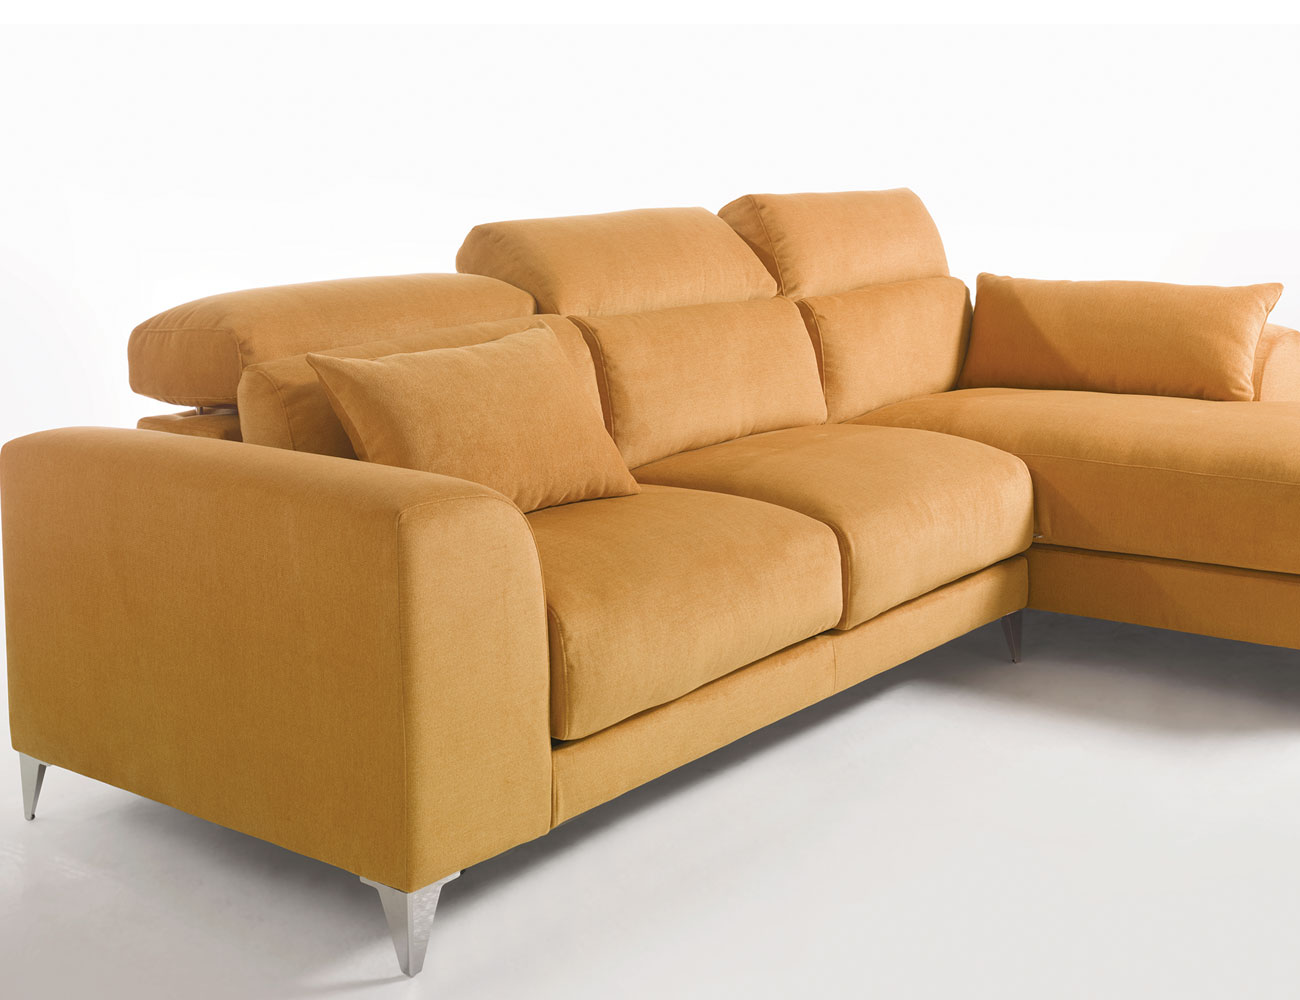 Sofa chaiselongue gran lujo decorativo patas altas amarillo 227